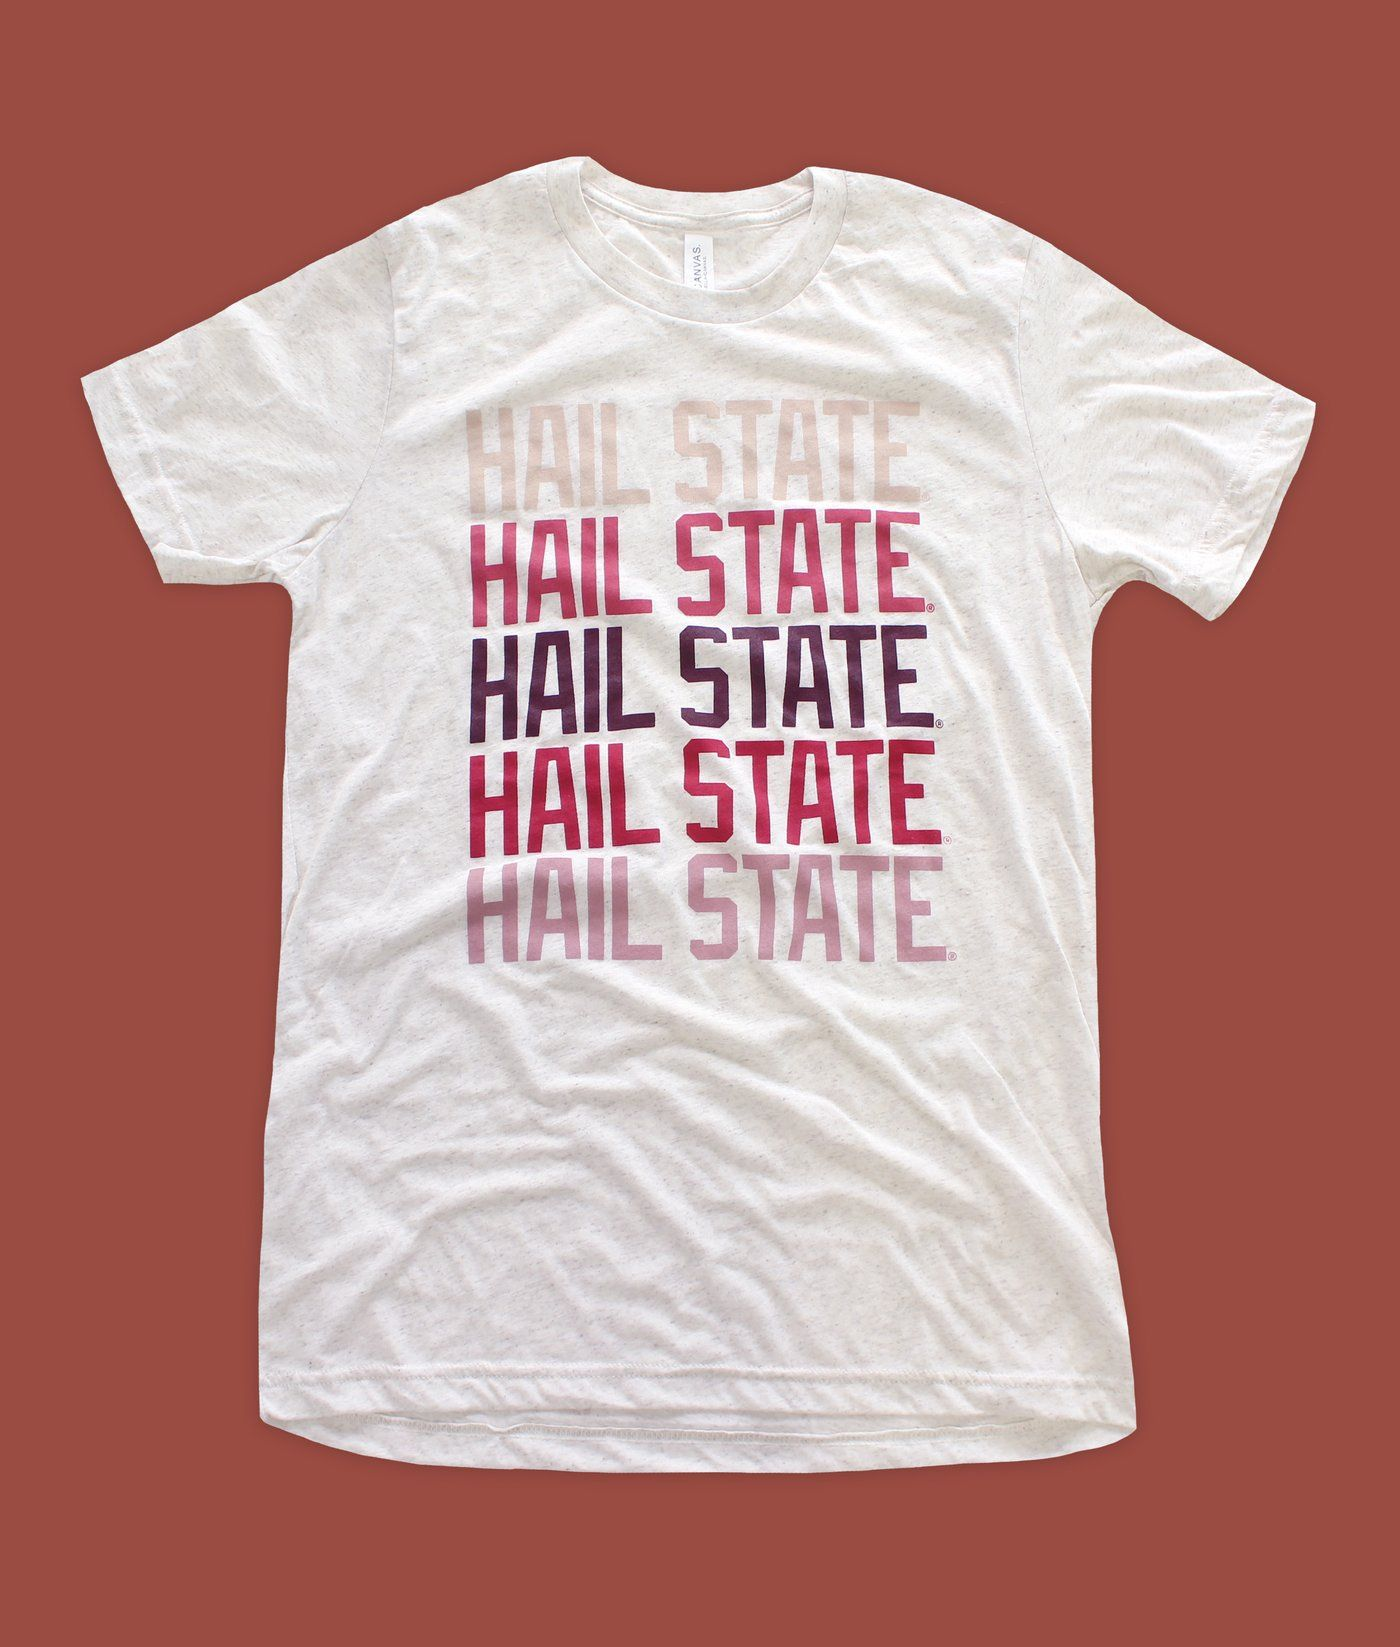 Online Store - College Apparel, Clothing, and Fan Gear